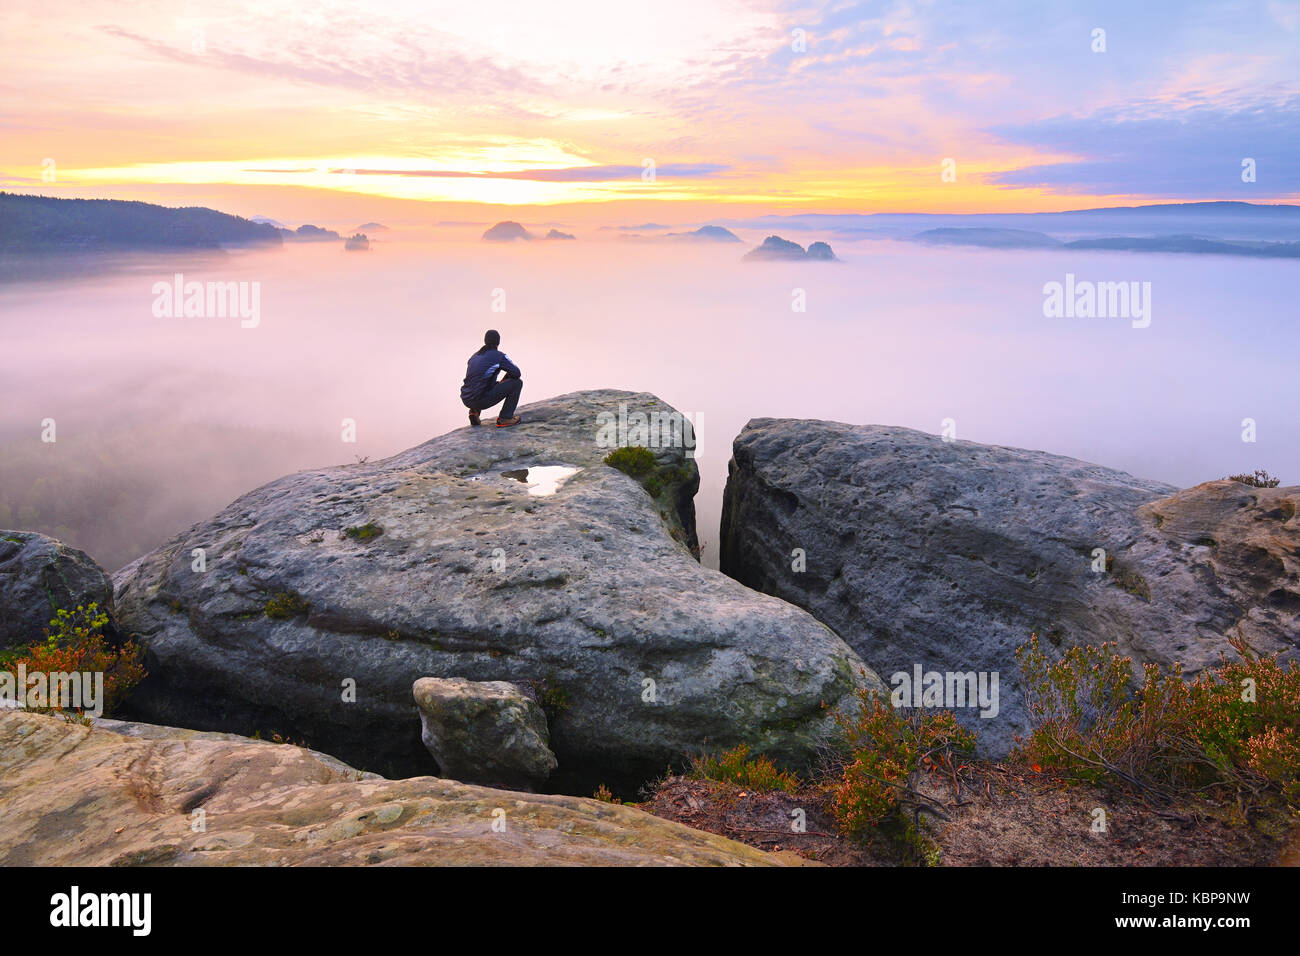 Sharp rear man silhouette on rocky peak. Satisfy hiker enjoy view. Tall man on rocky cliff watching down to landscape. - Stock Image